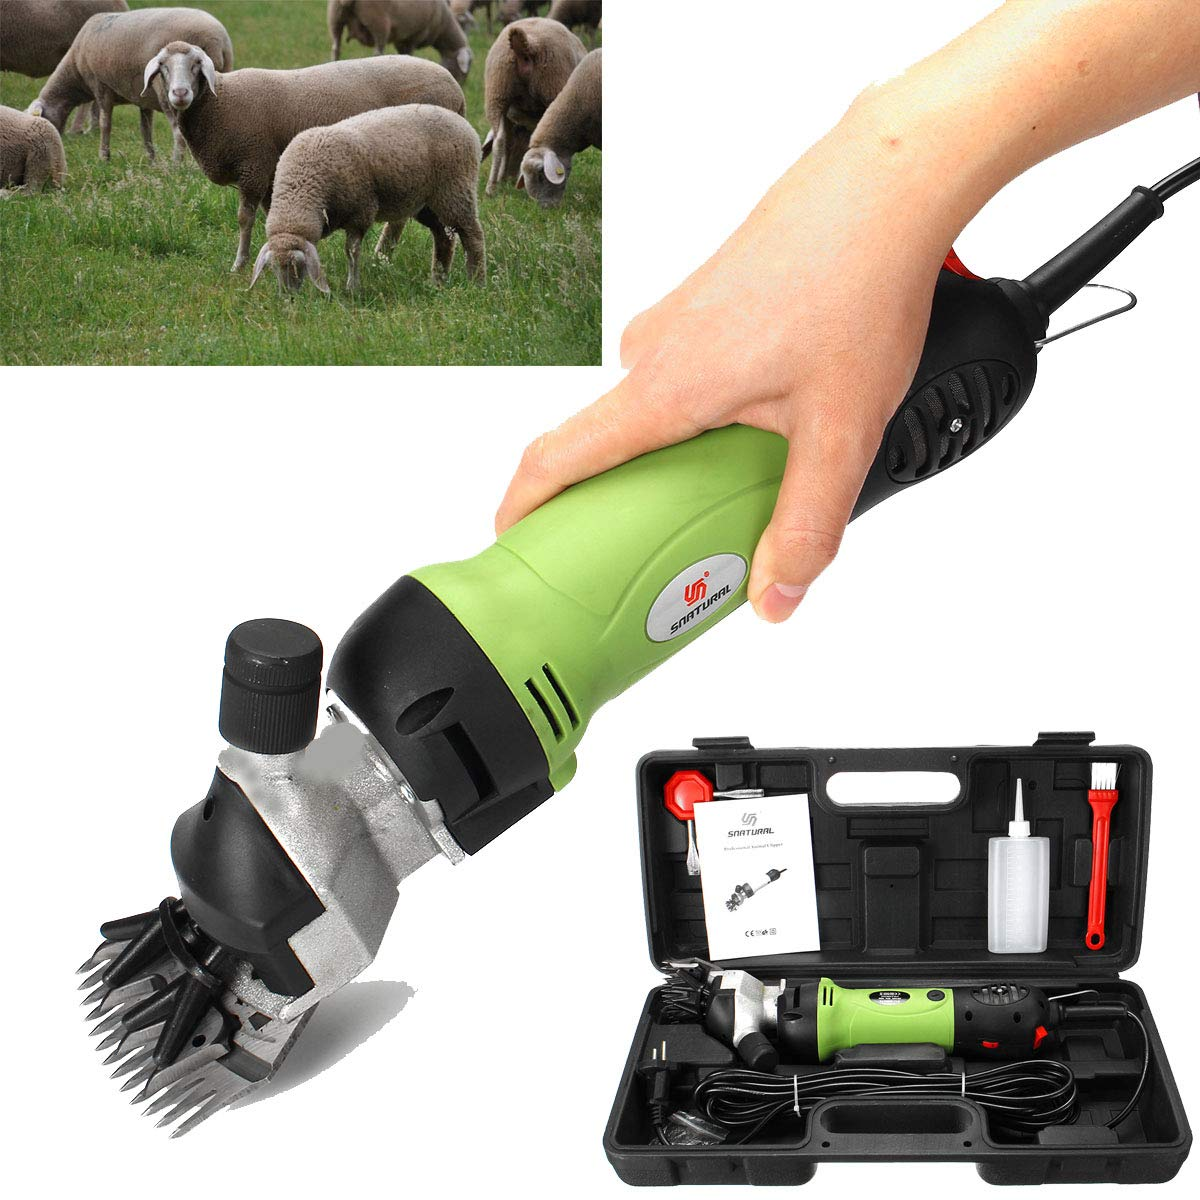 LIJUEZL 320W Elettrico Shearing Clipper Shear Pecore capre Alpaca Animali Farm Forniture